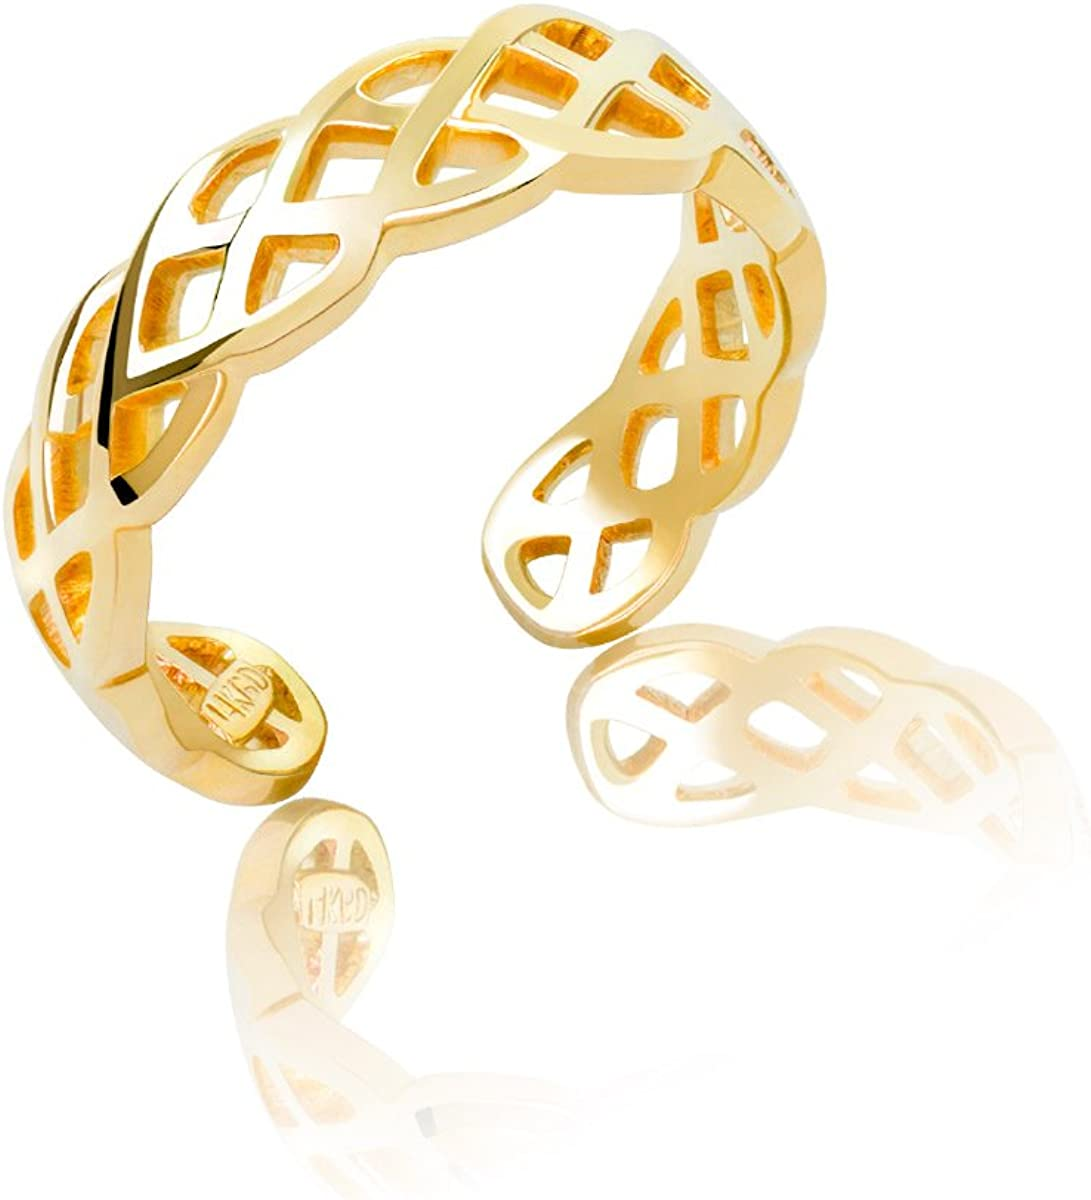 Honolulu Jewelry Company Max 57% OFF 14K Max 45% OFF Yellow Ring Gold Toe Braided Weave